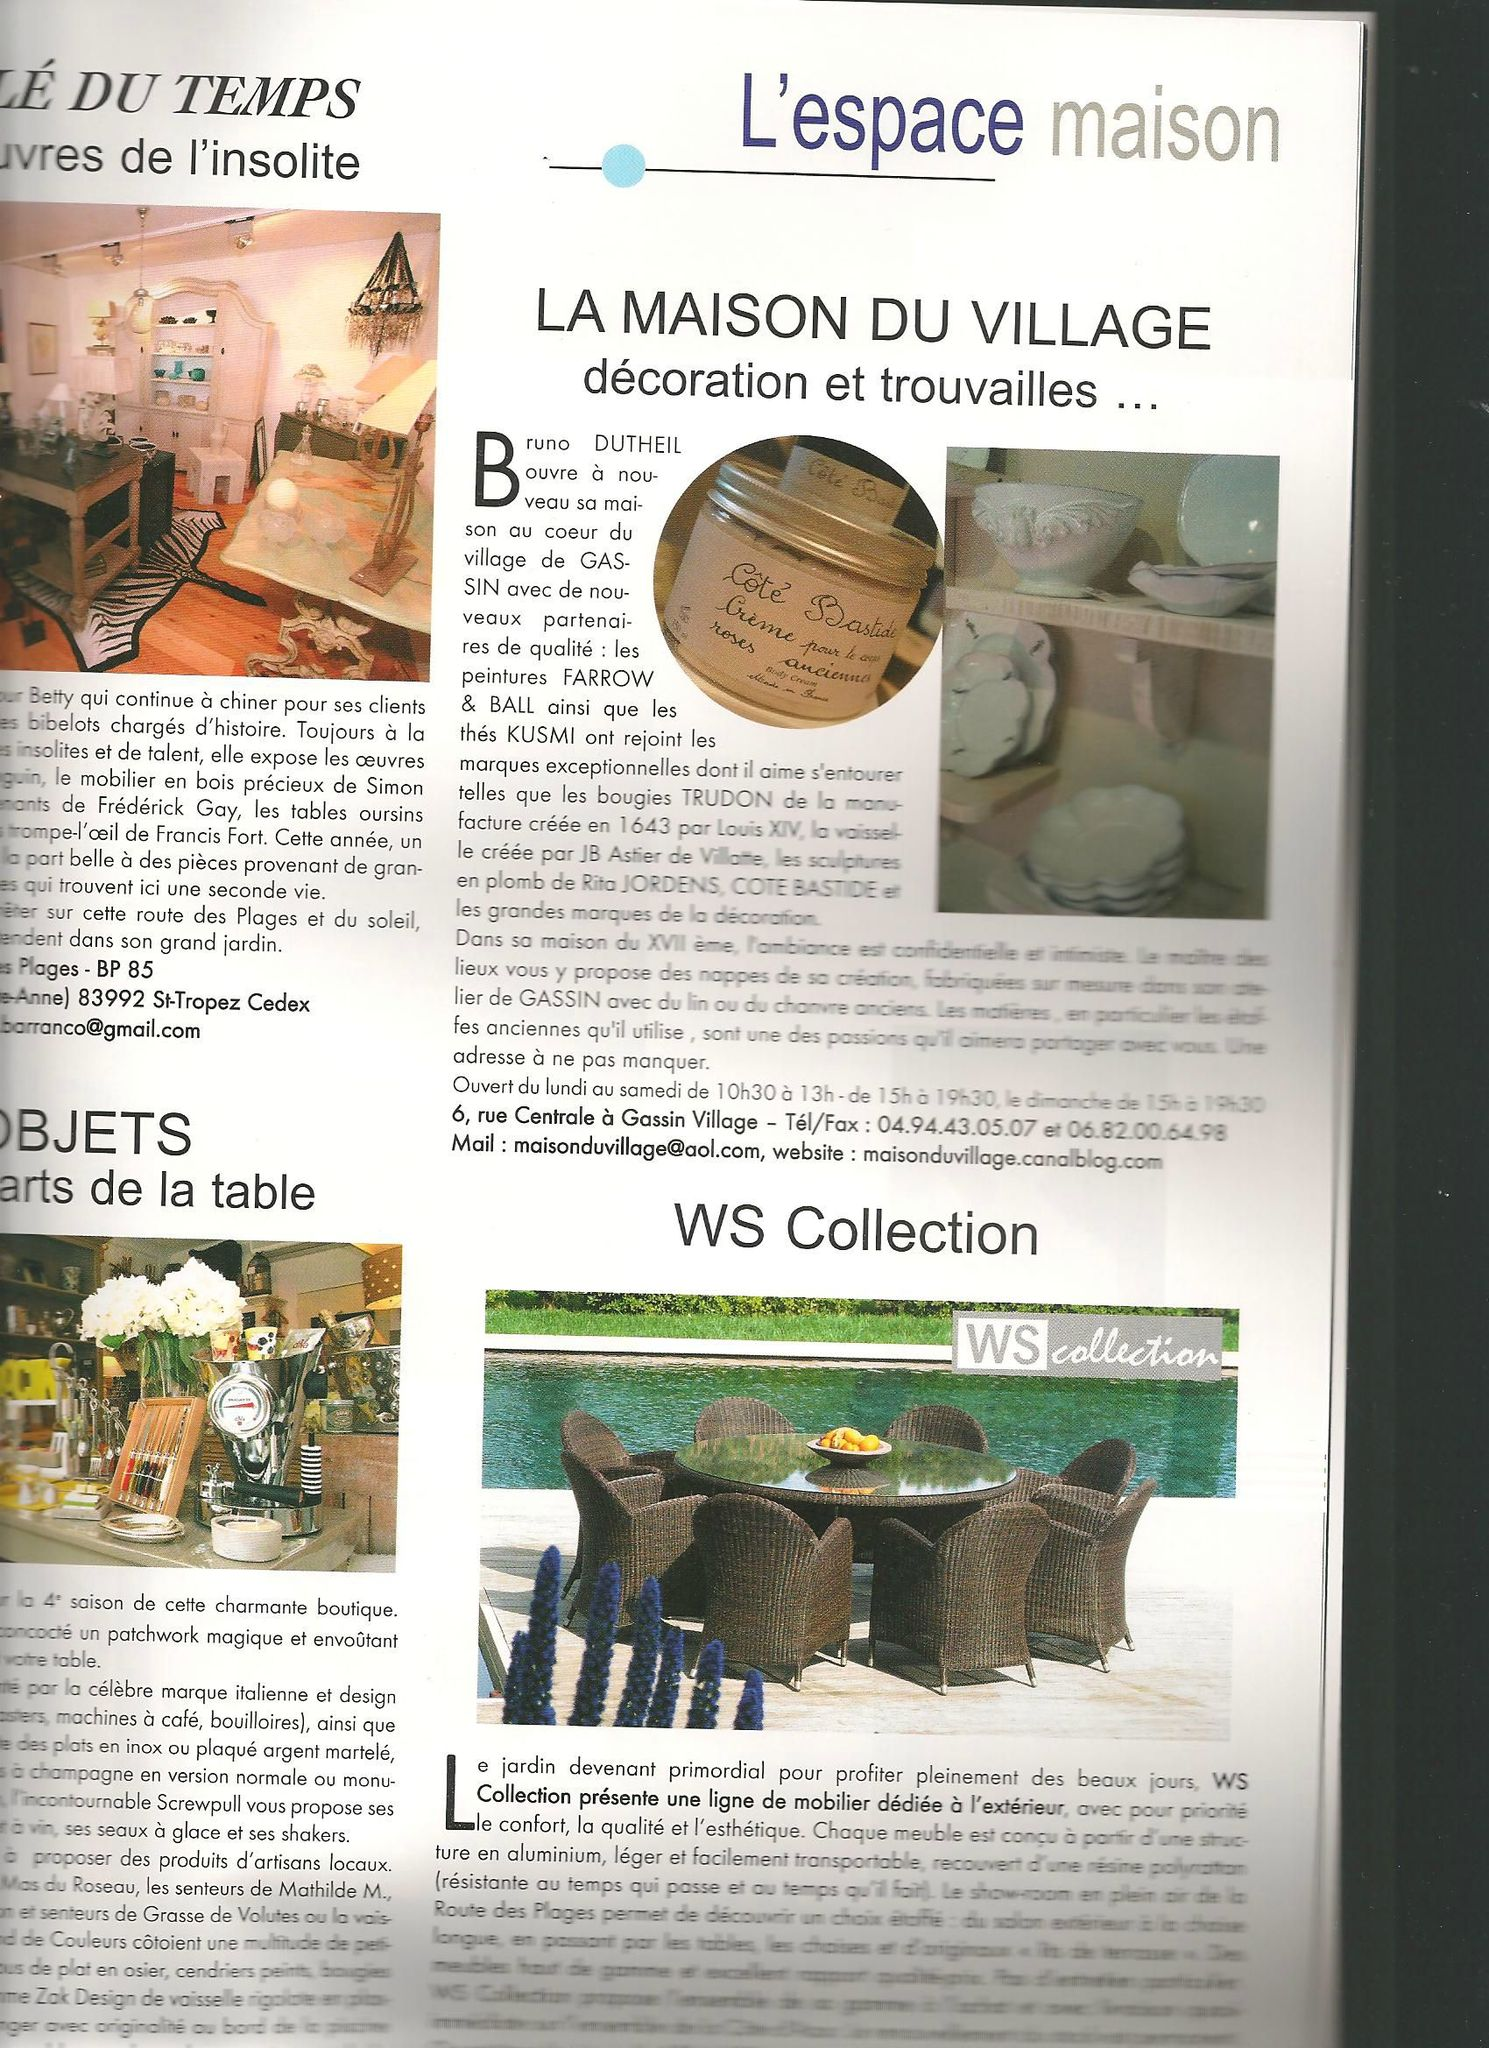 MV_La_Maison_du_Village_gassin_saint_tropez_boutique_décoration_Presse__(24).jpg